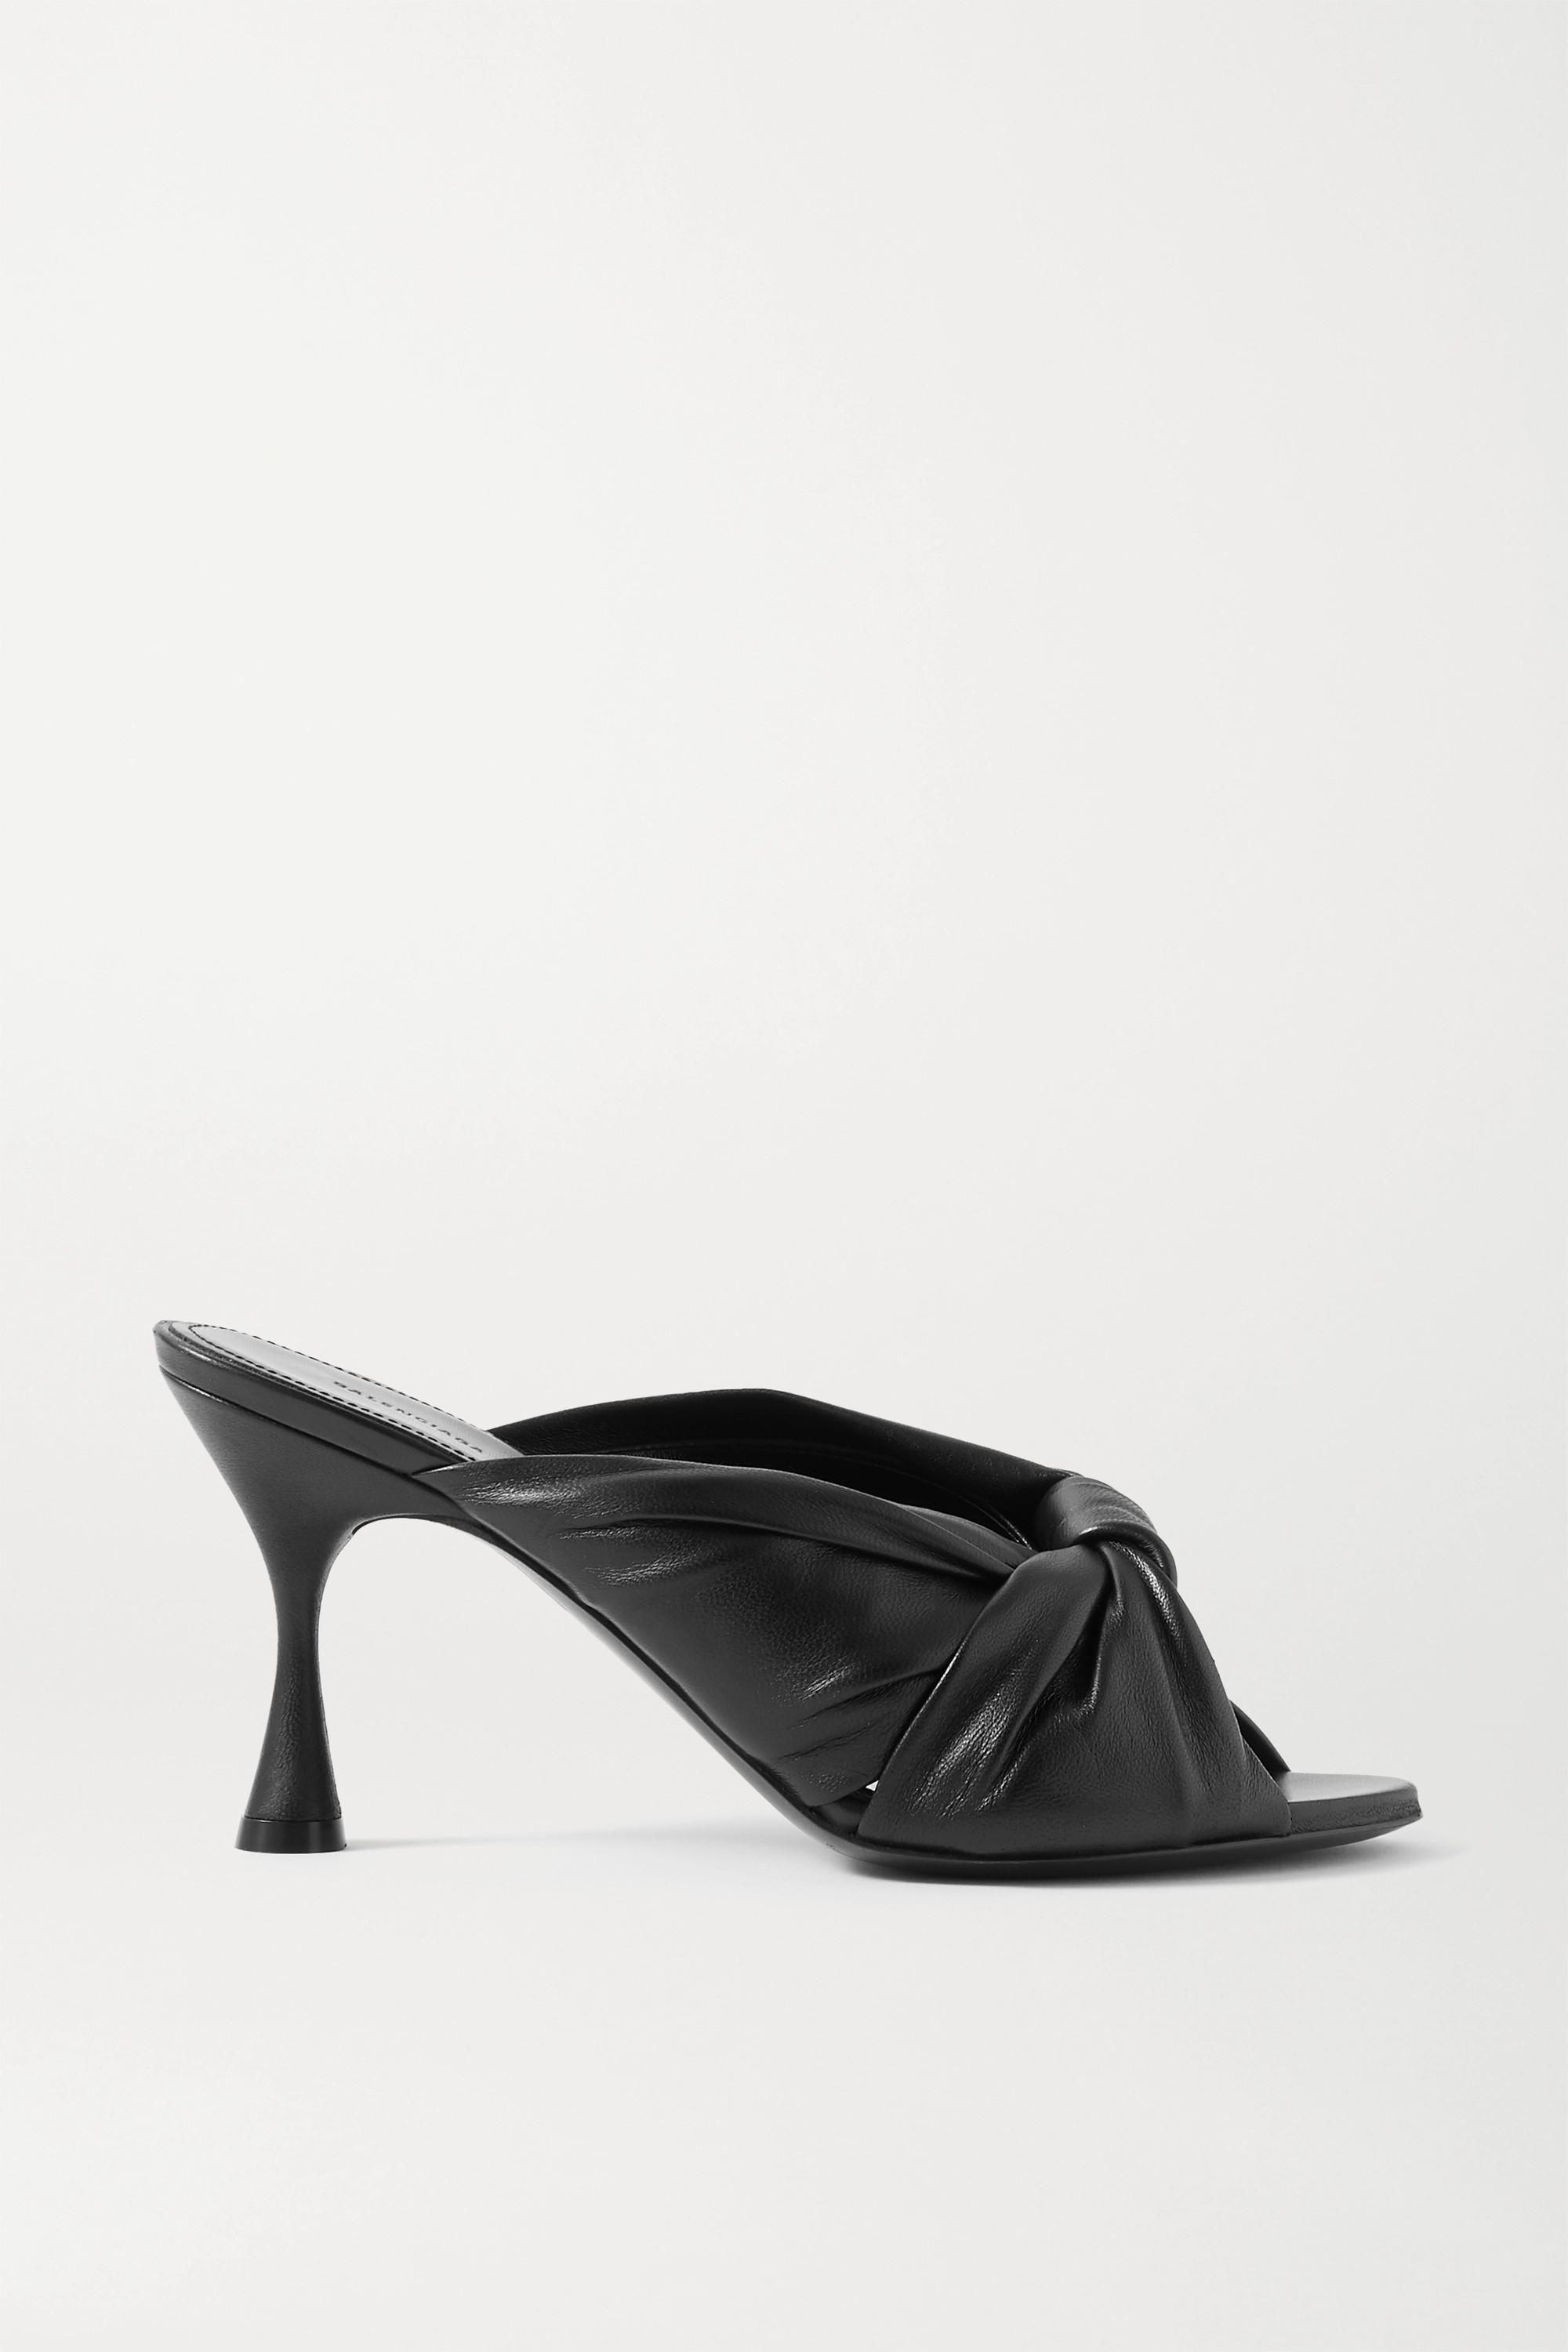 Balenciaga Drapy knotted leather mules